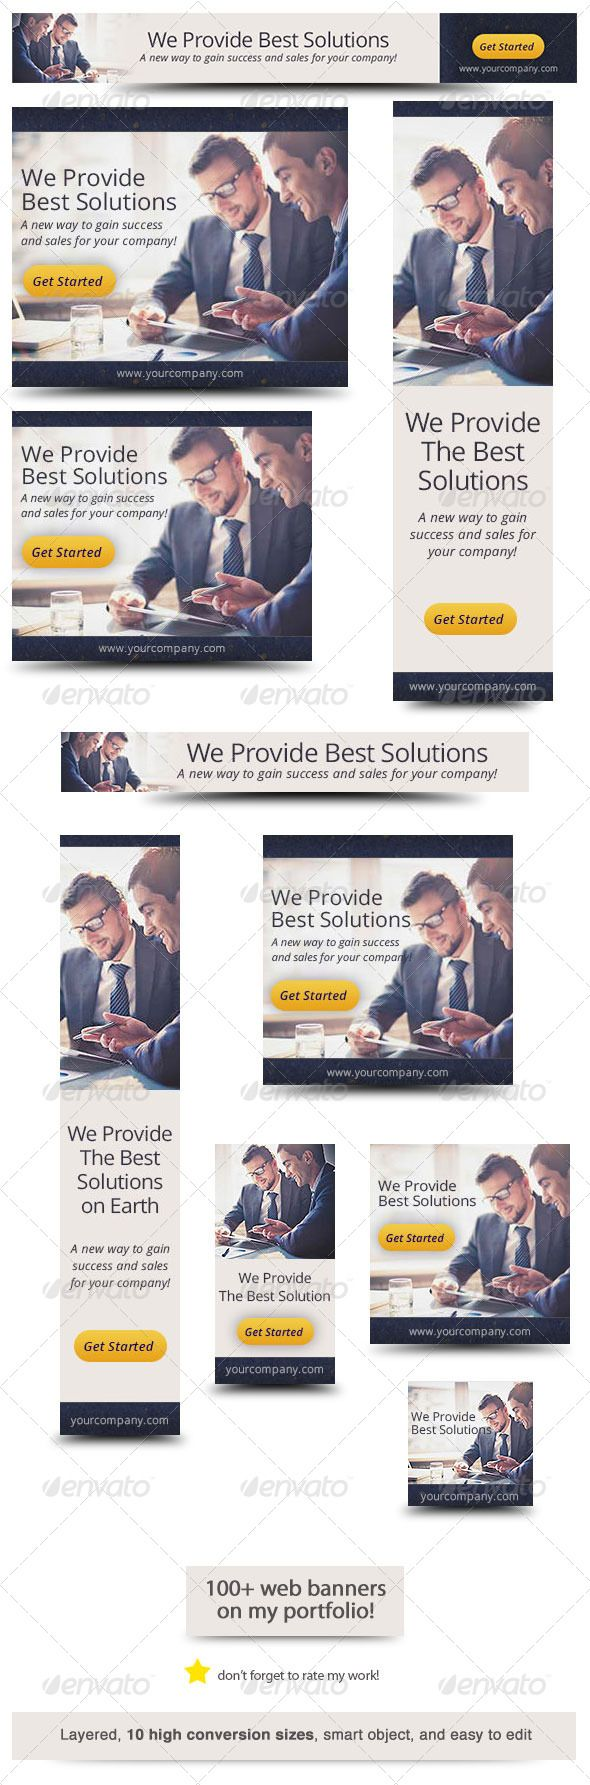 Corporate Web Banner Design Template PSD   Buy and Download: http://graphicriver.net/item/corporate-web-banner-design-template-34/6556353?WT.ac=category_thumb&WT.z_author=admiral_adictus&ref=ksioks